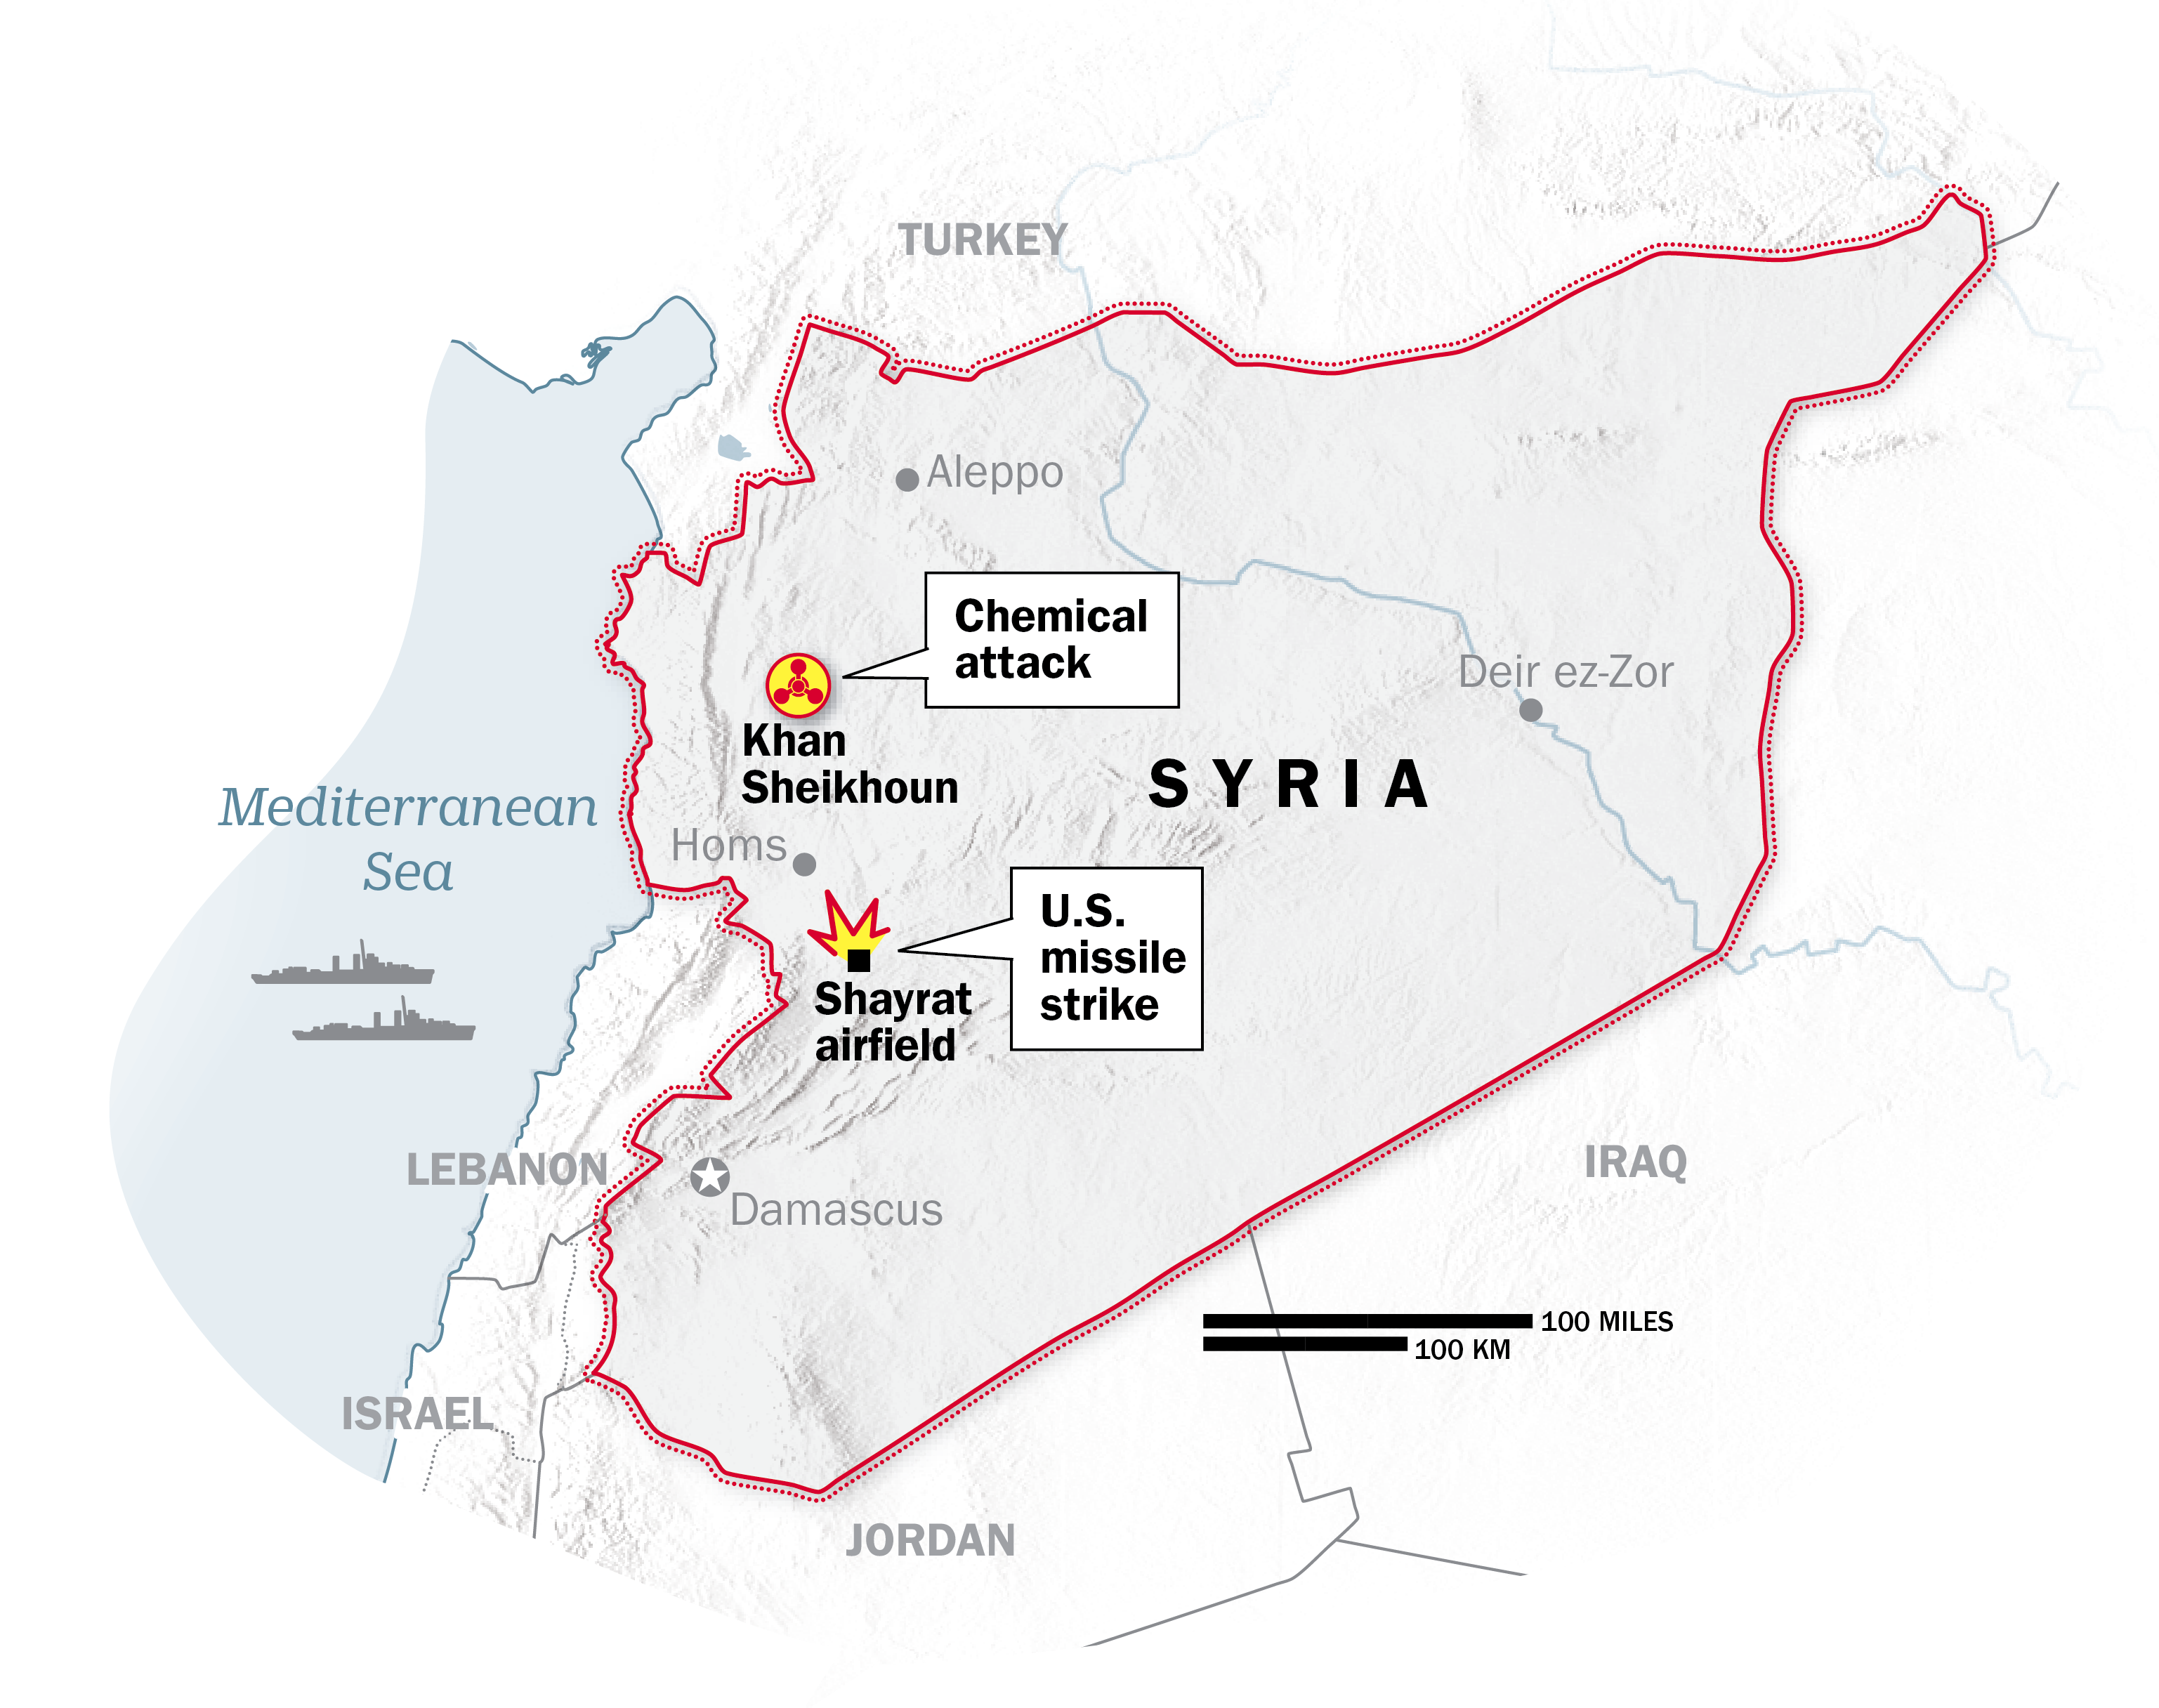 Site of U.S. missile strike on Syrian air base